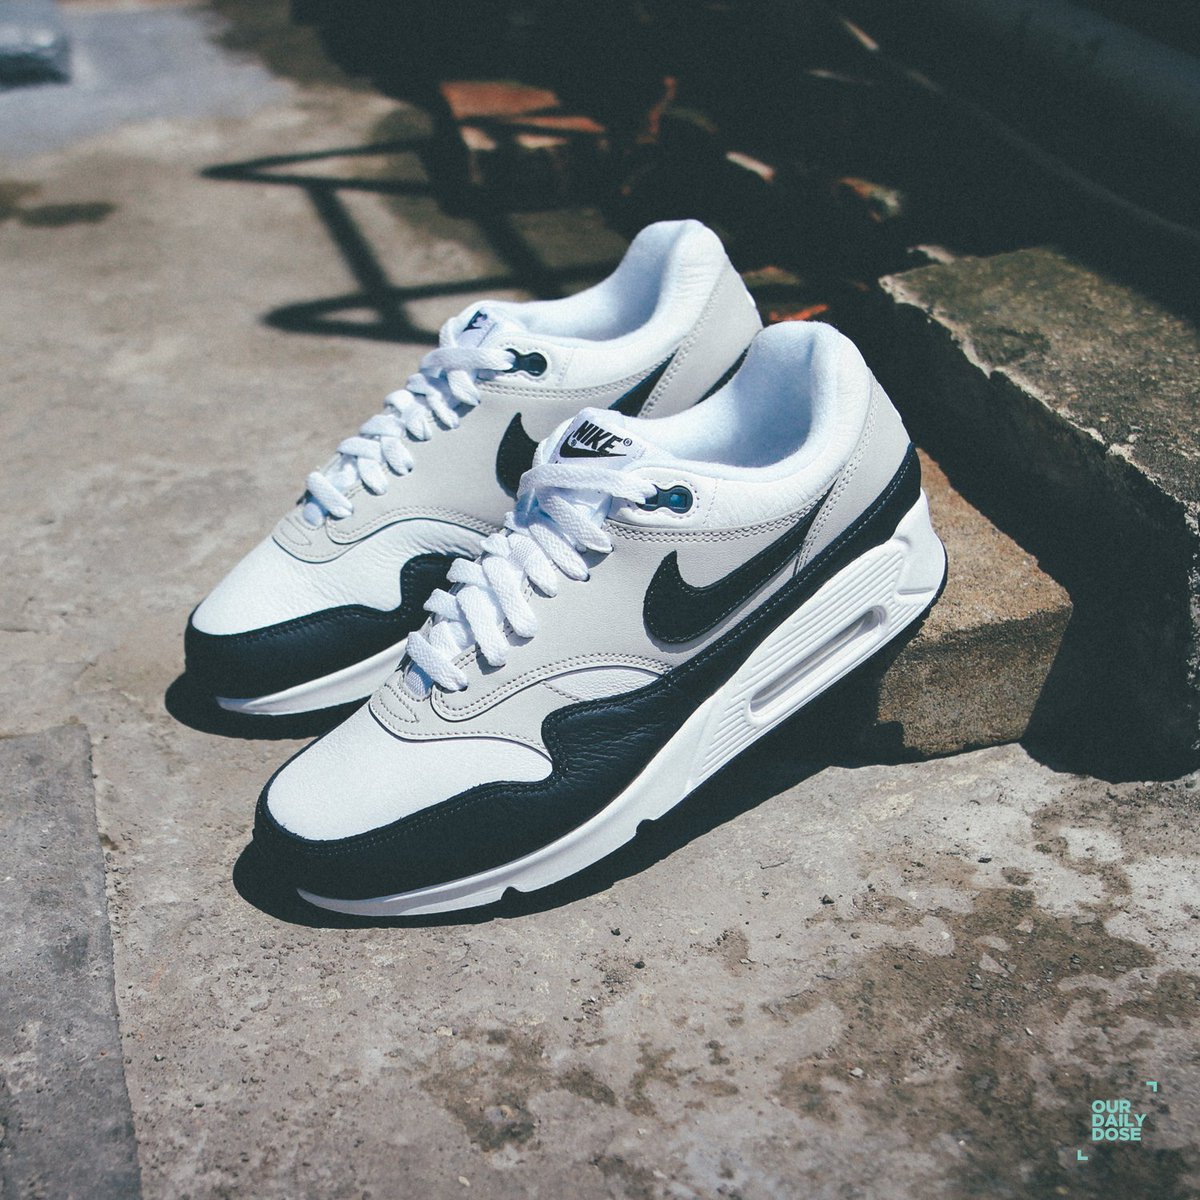 a665fb6d45 Nike Air Max 90/1 comes in White, Dark Obsidian and Neutral Grey theme.  With the upper leather detail, darker shade running across the mudguard,  Nike Swoosh ...